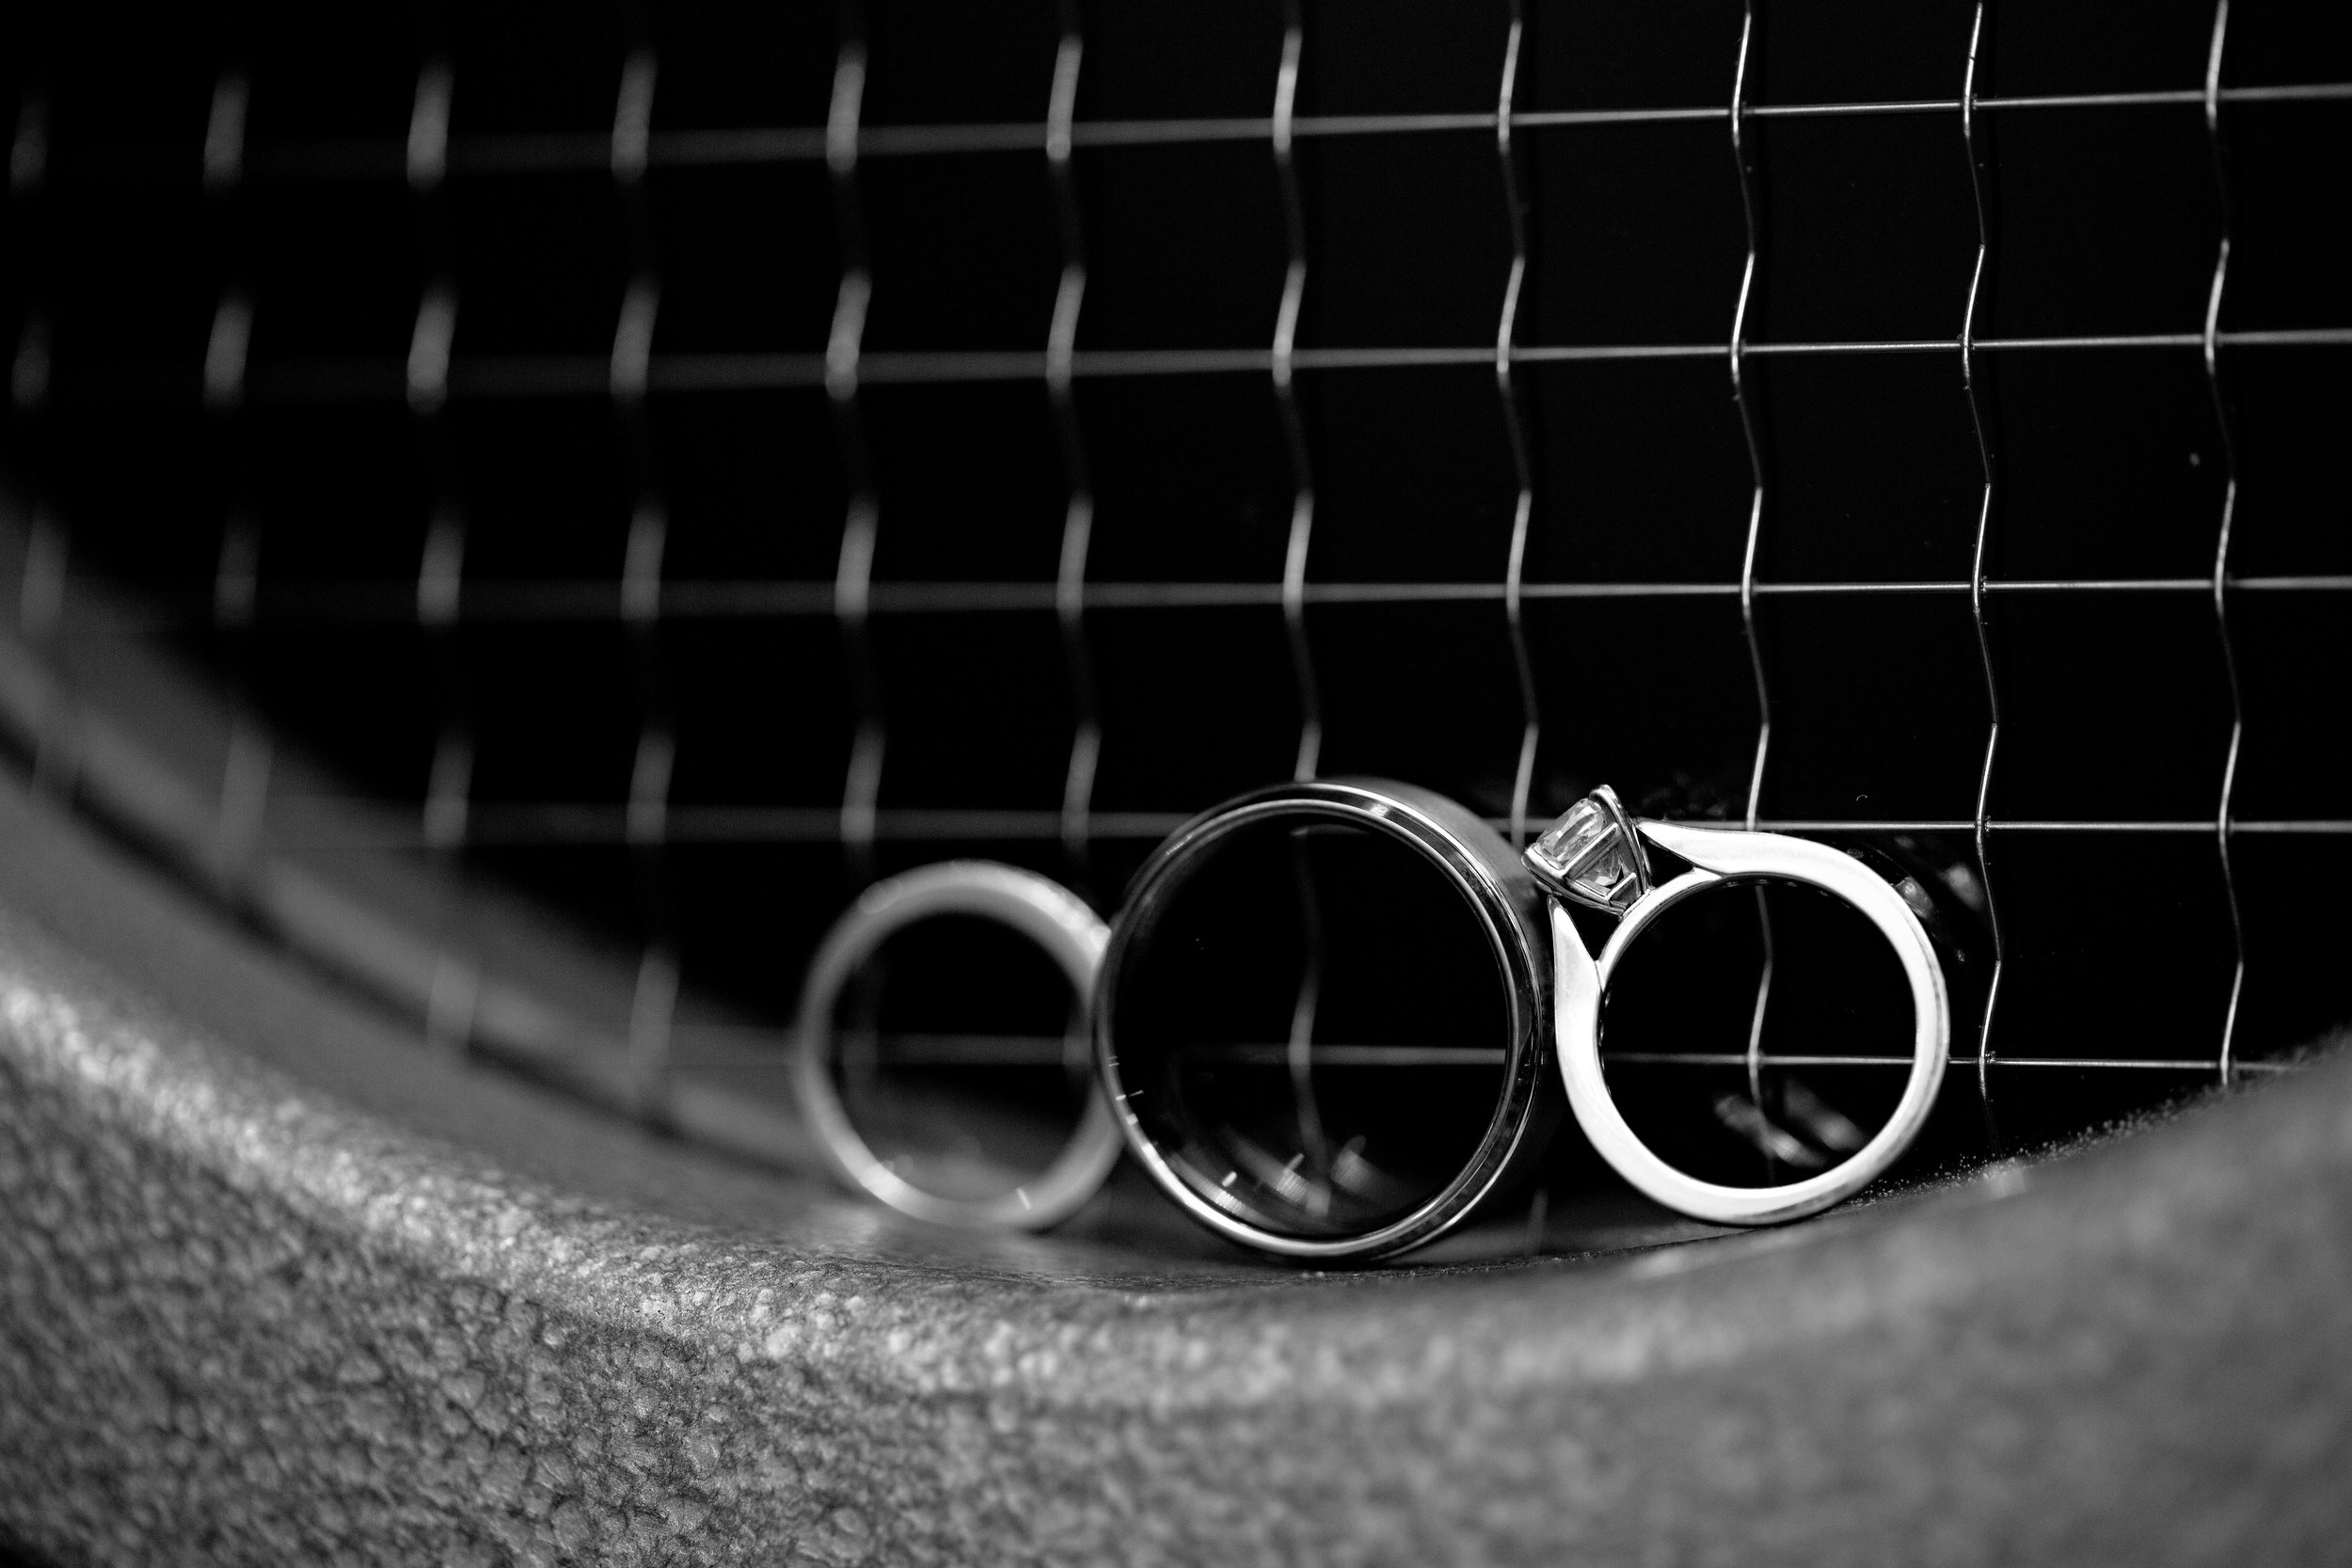 3 bride and groom rings bride and groom ring poses black and white wedding photos O Grace Photography Life Design Events .jpg